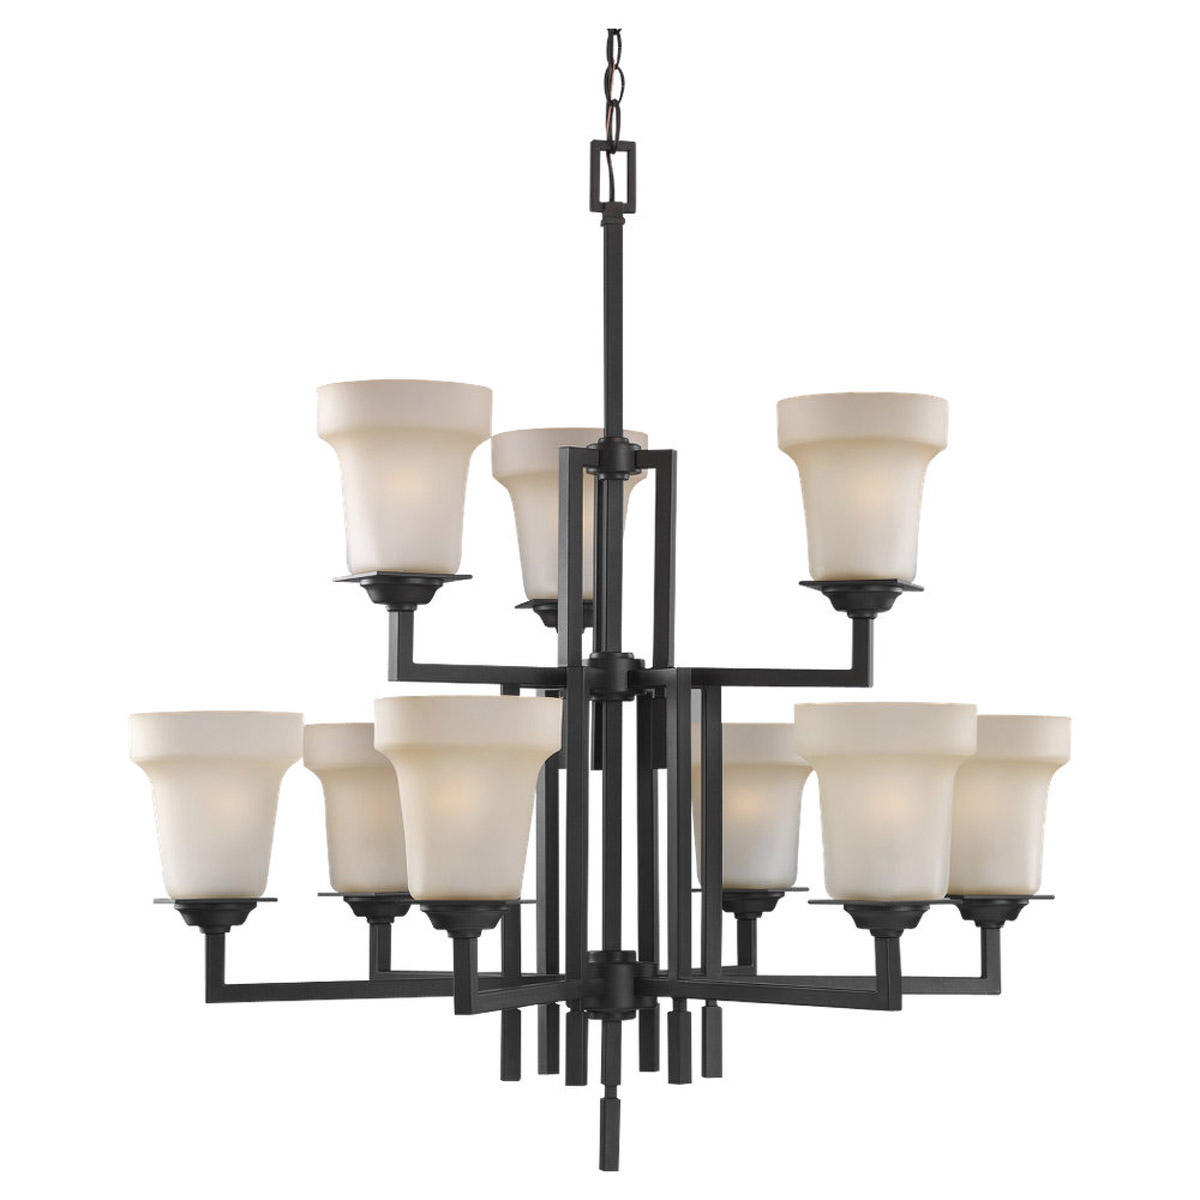 Sea Gull Lighting Cardwell 9 Light Chandelier in Misted Bronze 31633-814 photo